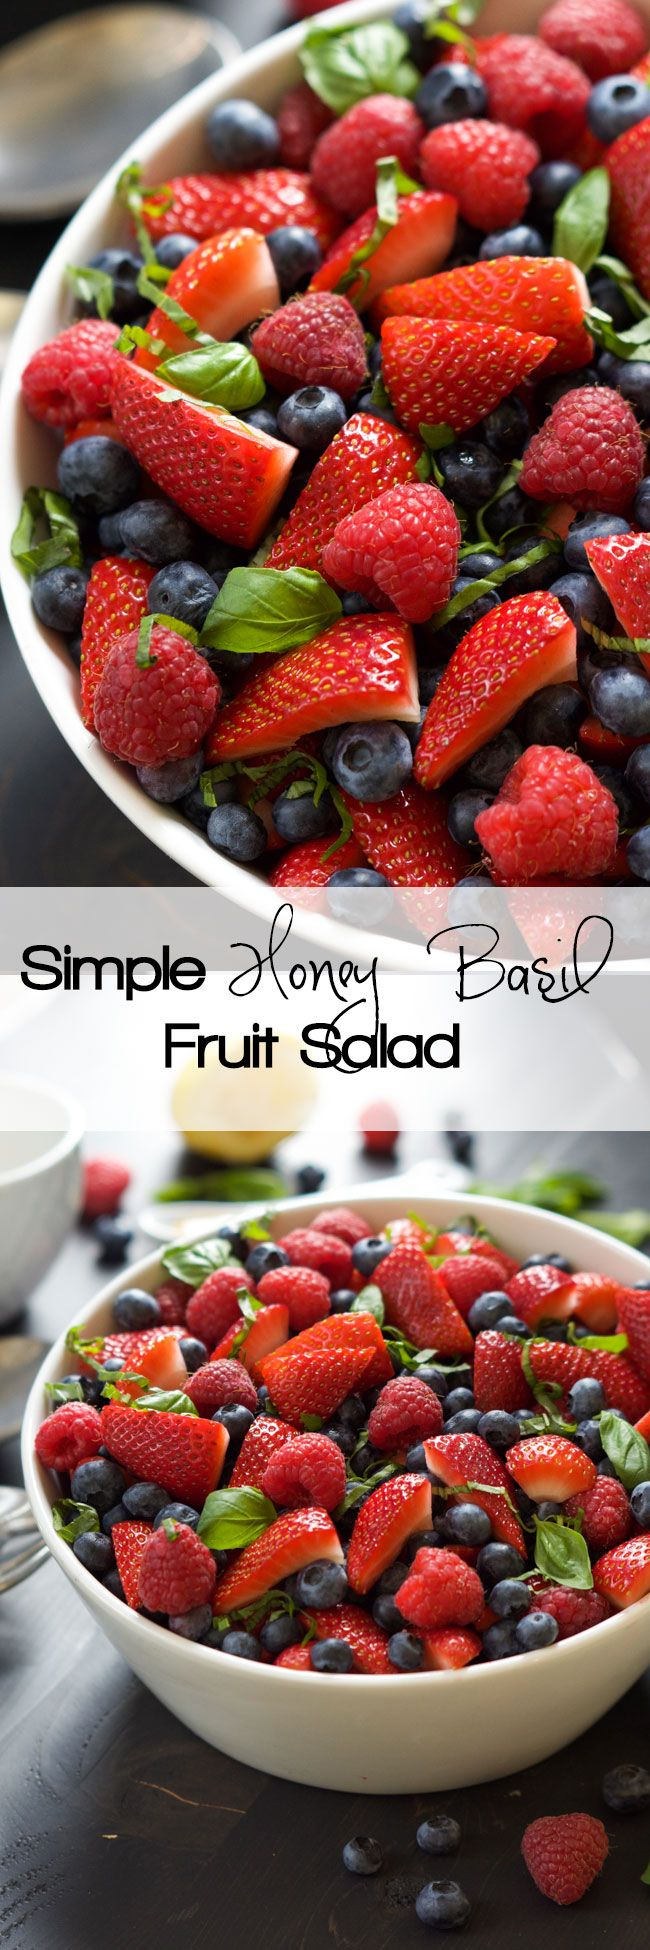 A salad doesn't get any better or fresher than this! Honey Basil Fruit Salad is a mix of fresh fruit and tossed in a 3 ingredient dressing: honey, basil and lemon!